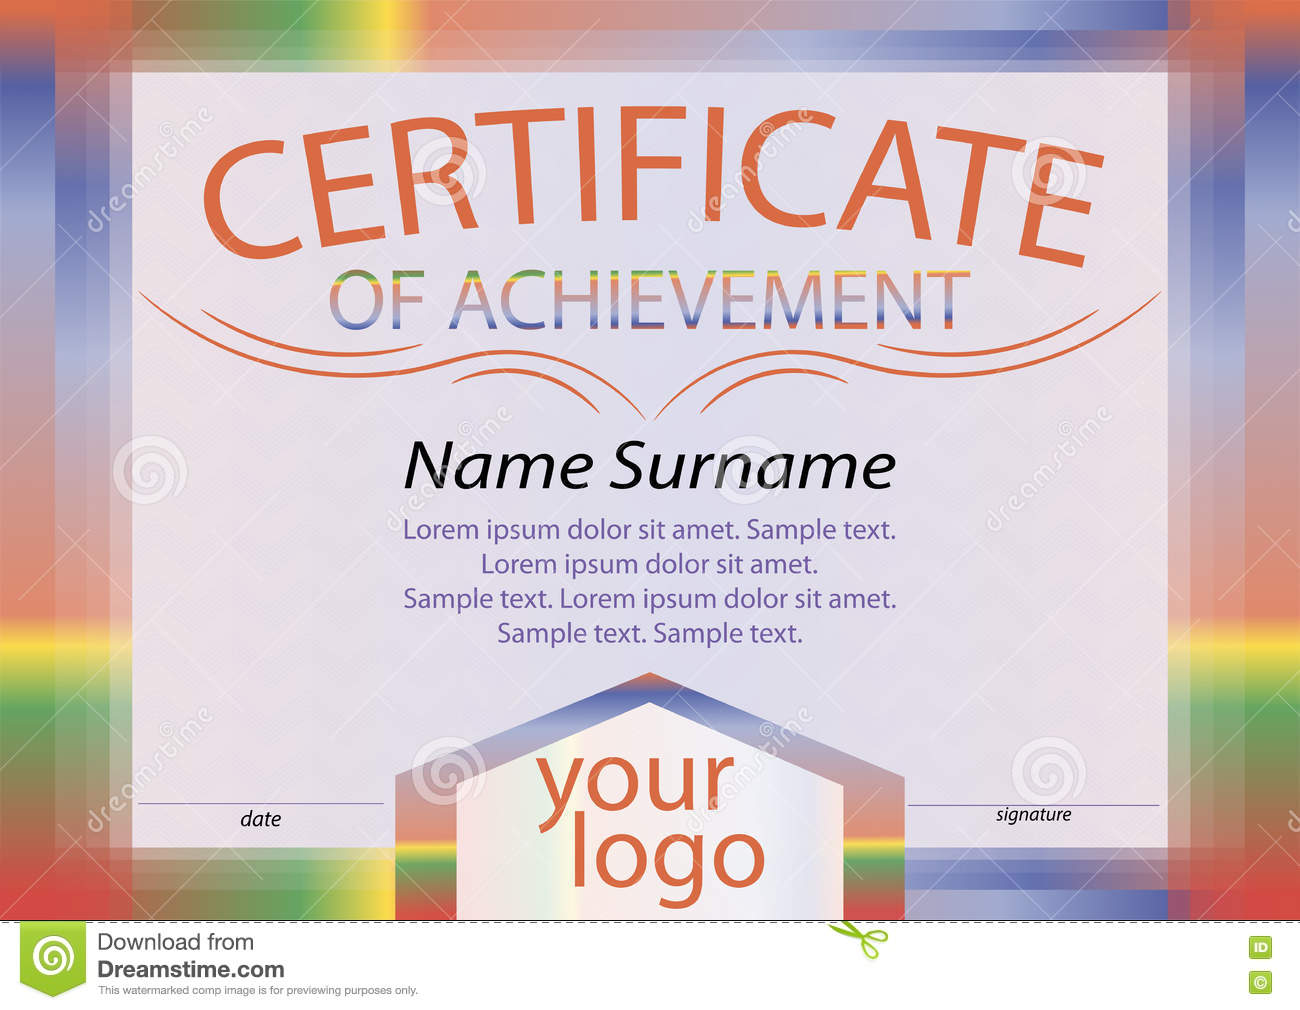 Certificate of achievement or diploma bright frame reward win certificate of achievement or diploma bright frame reward win yelopaper Choice Image